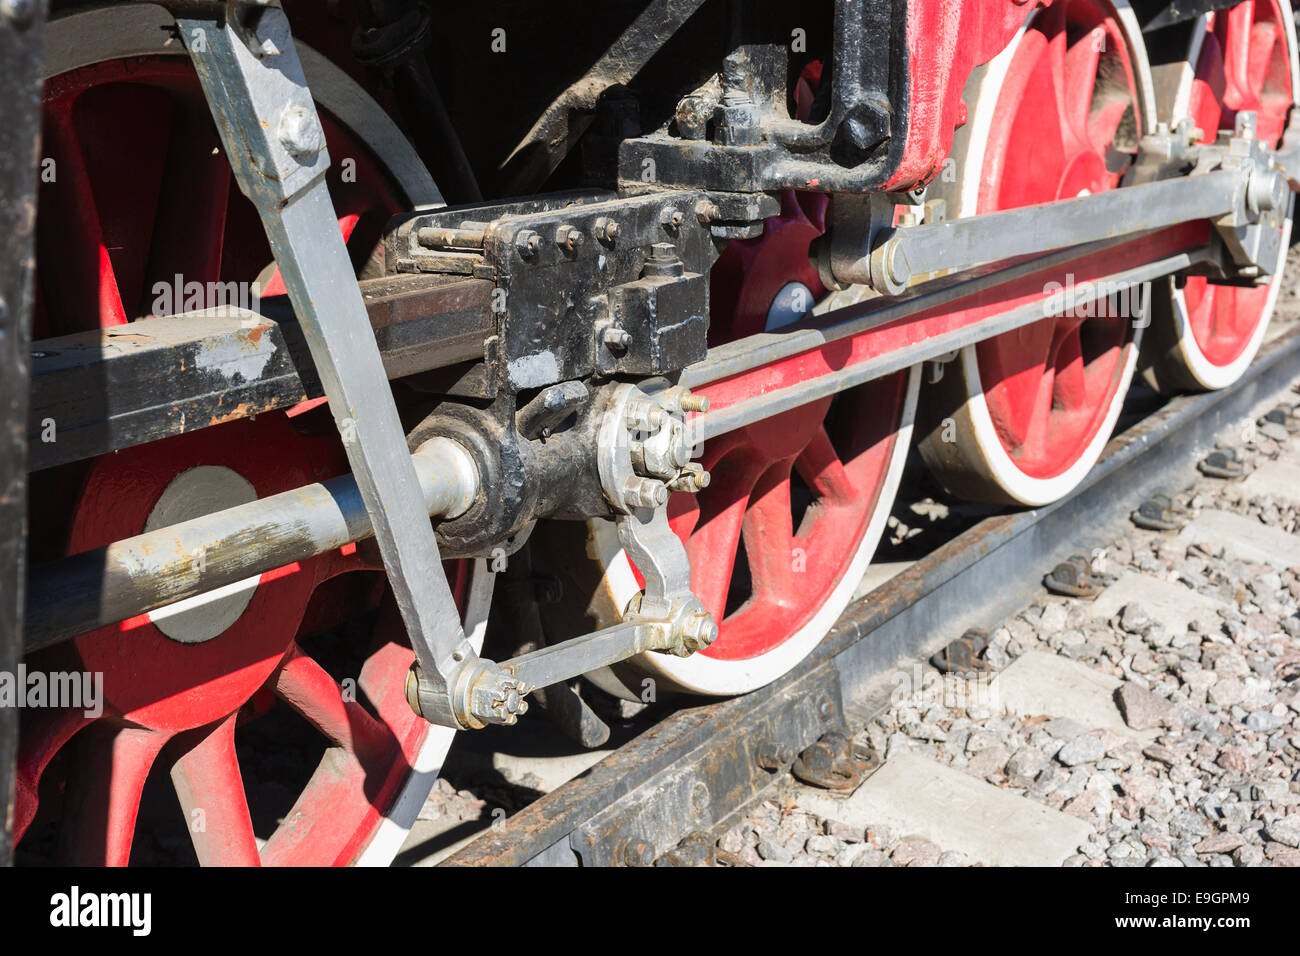 Closeup view of steam locomotive wheels, drives, rods, links and other mechanical details. White, black and red - Stock Image